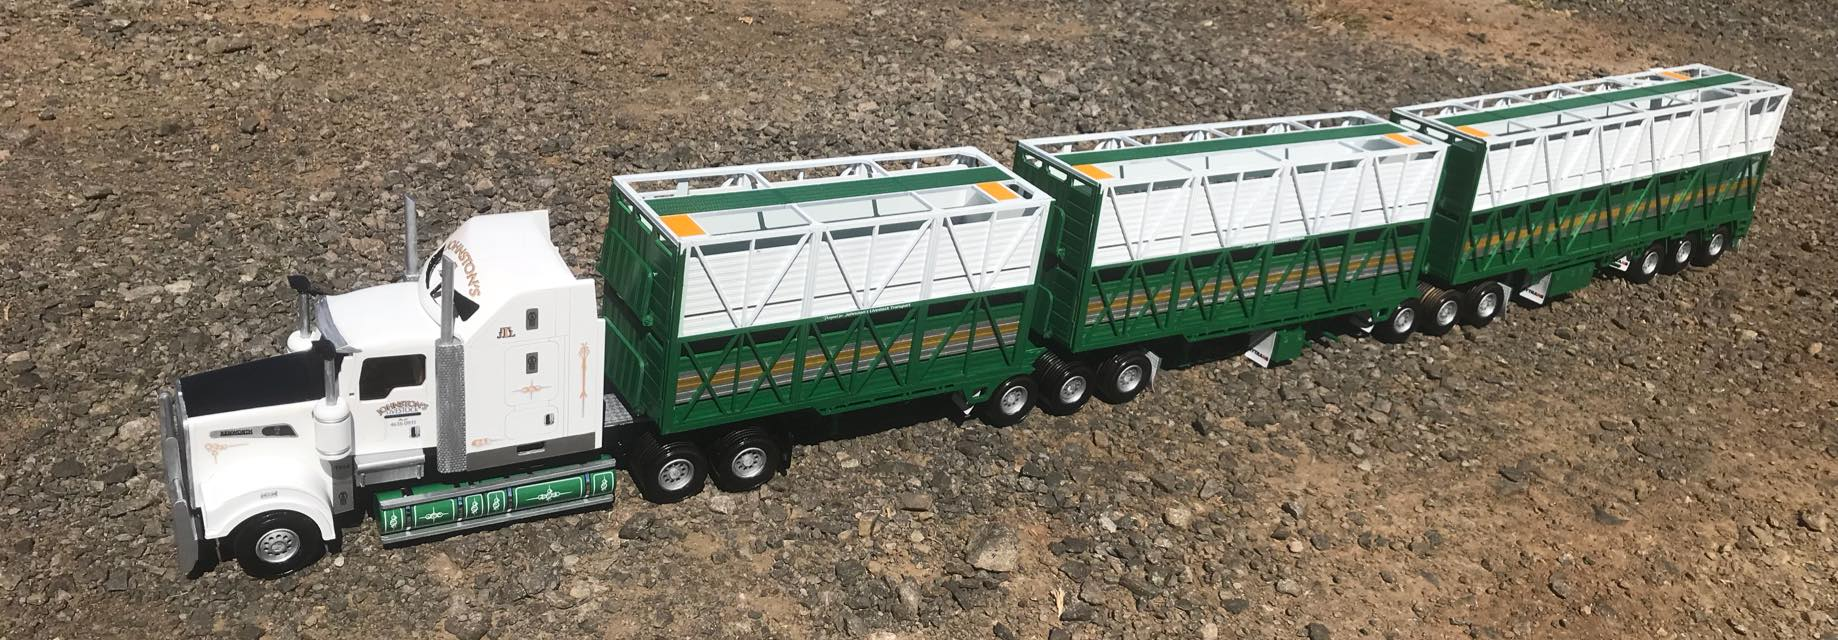 KW-T909-Rytrans-livestock-trailers-1